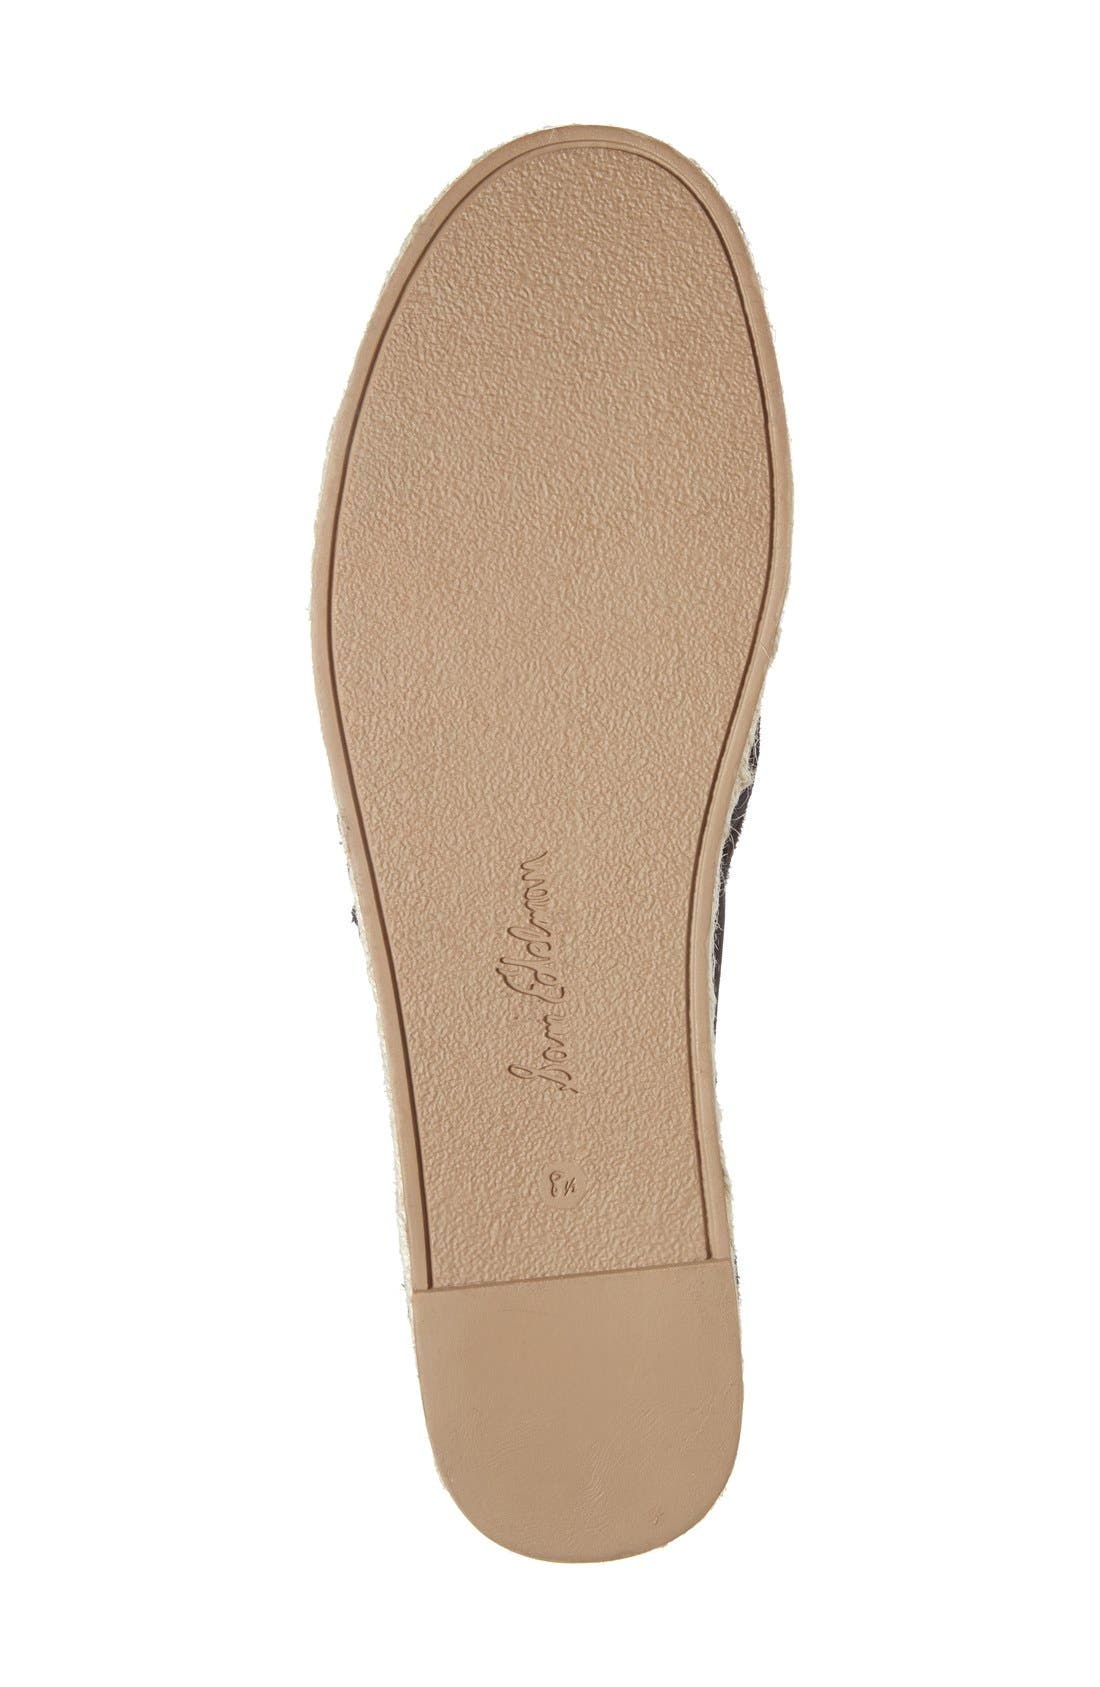 'Carrin' Espadrille Flat,                             Alternate thumbnail 4, color,                             001